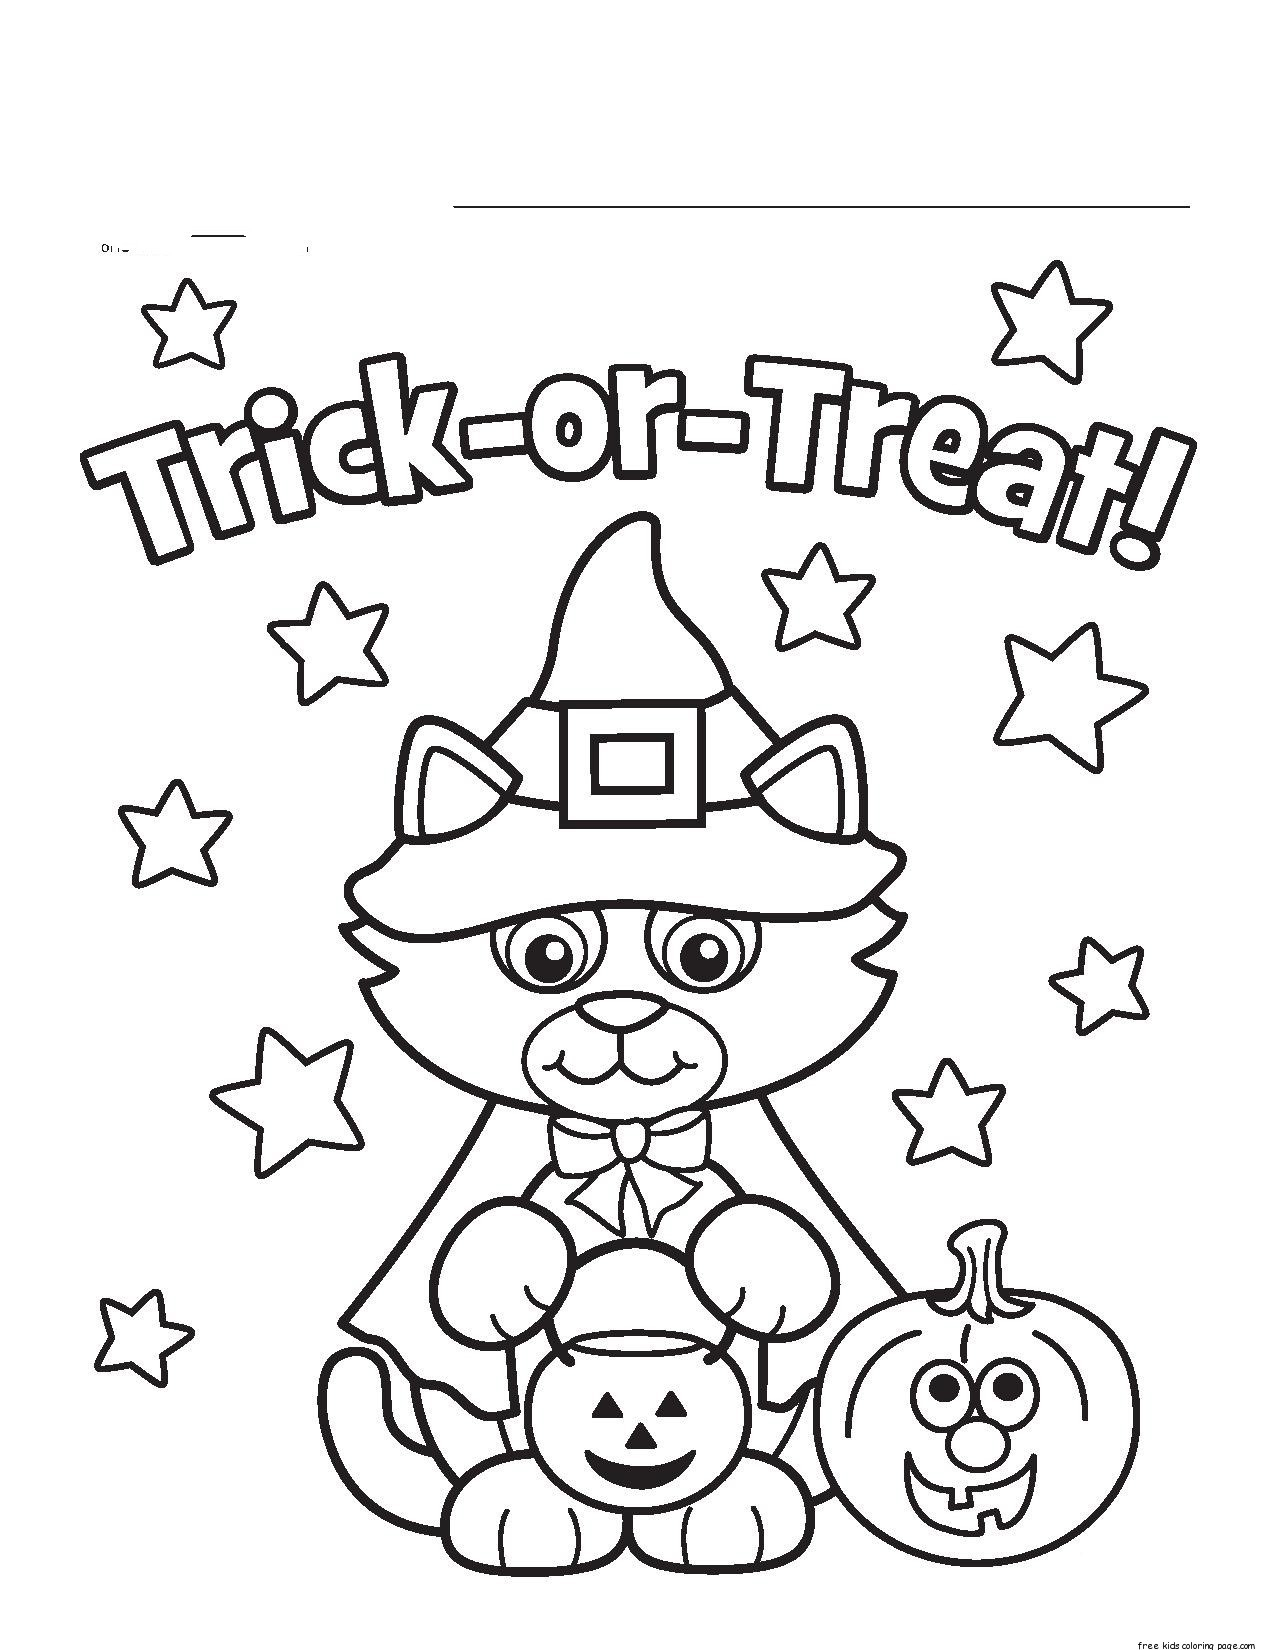 Halloween Coloring Pages Printable Halloween Coloring Pages Printable Toddler New 12751650 Attachment